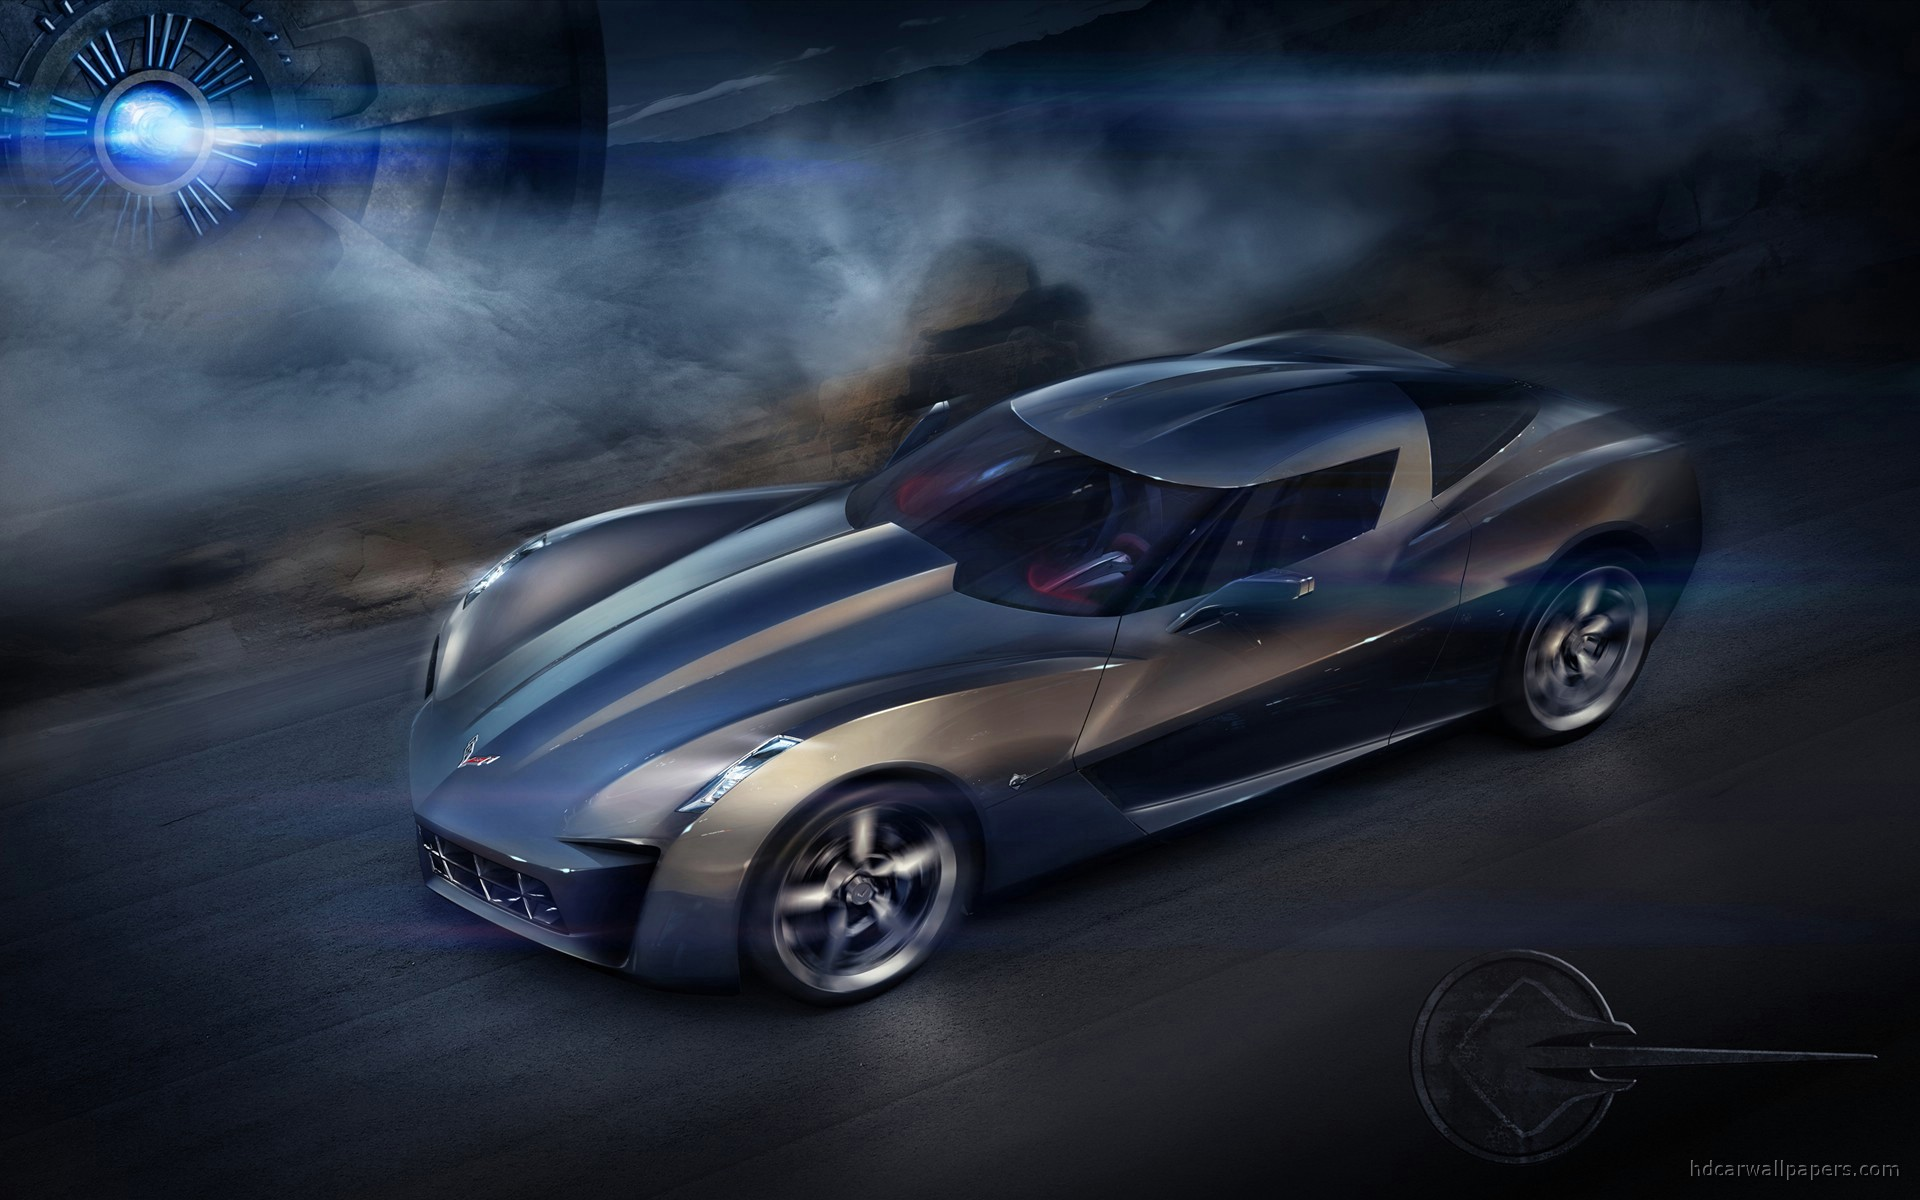 Chevy Corvette Stingray Wallpaper - WallpaperSafari